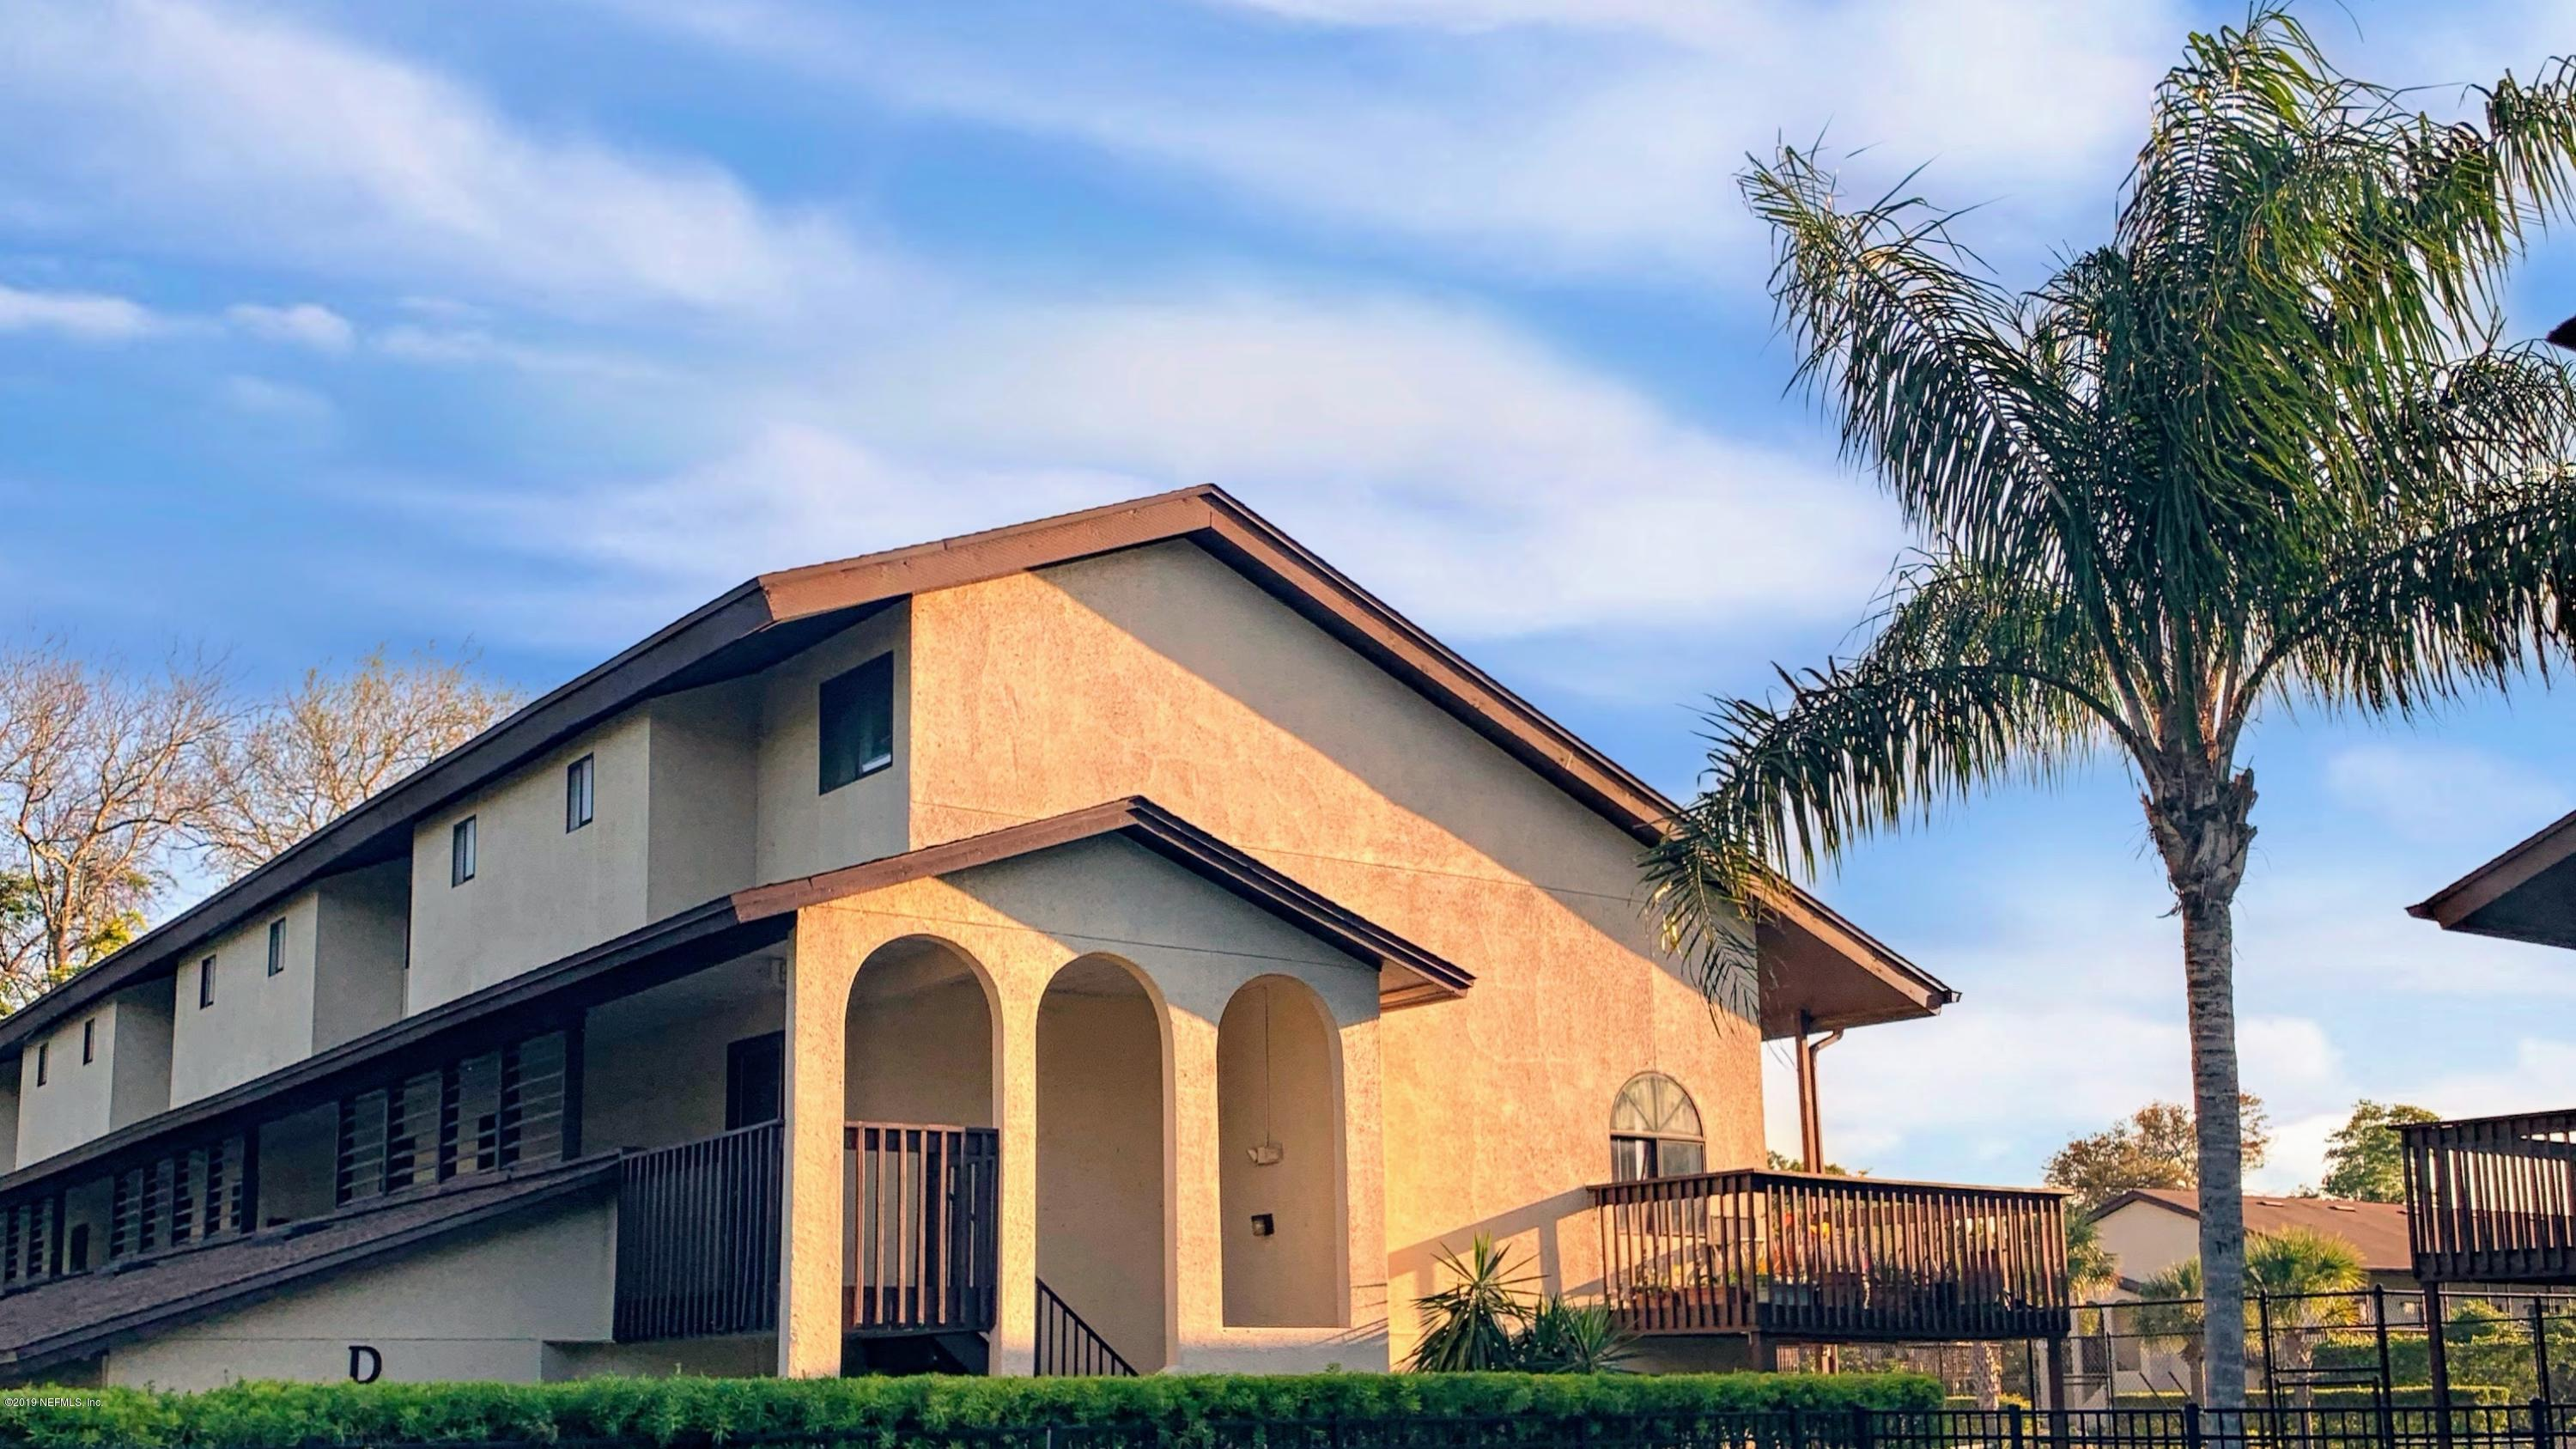 1255 PONCE ISLAND, ST AUGUSTINE, FLORIDA 32095, 1 Bedroom Bedrooms, ,1 BathroomBathrooms,Condo,For sale,PONCE ISLAND,1013573